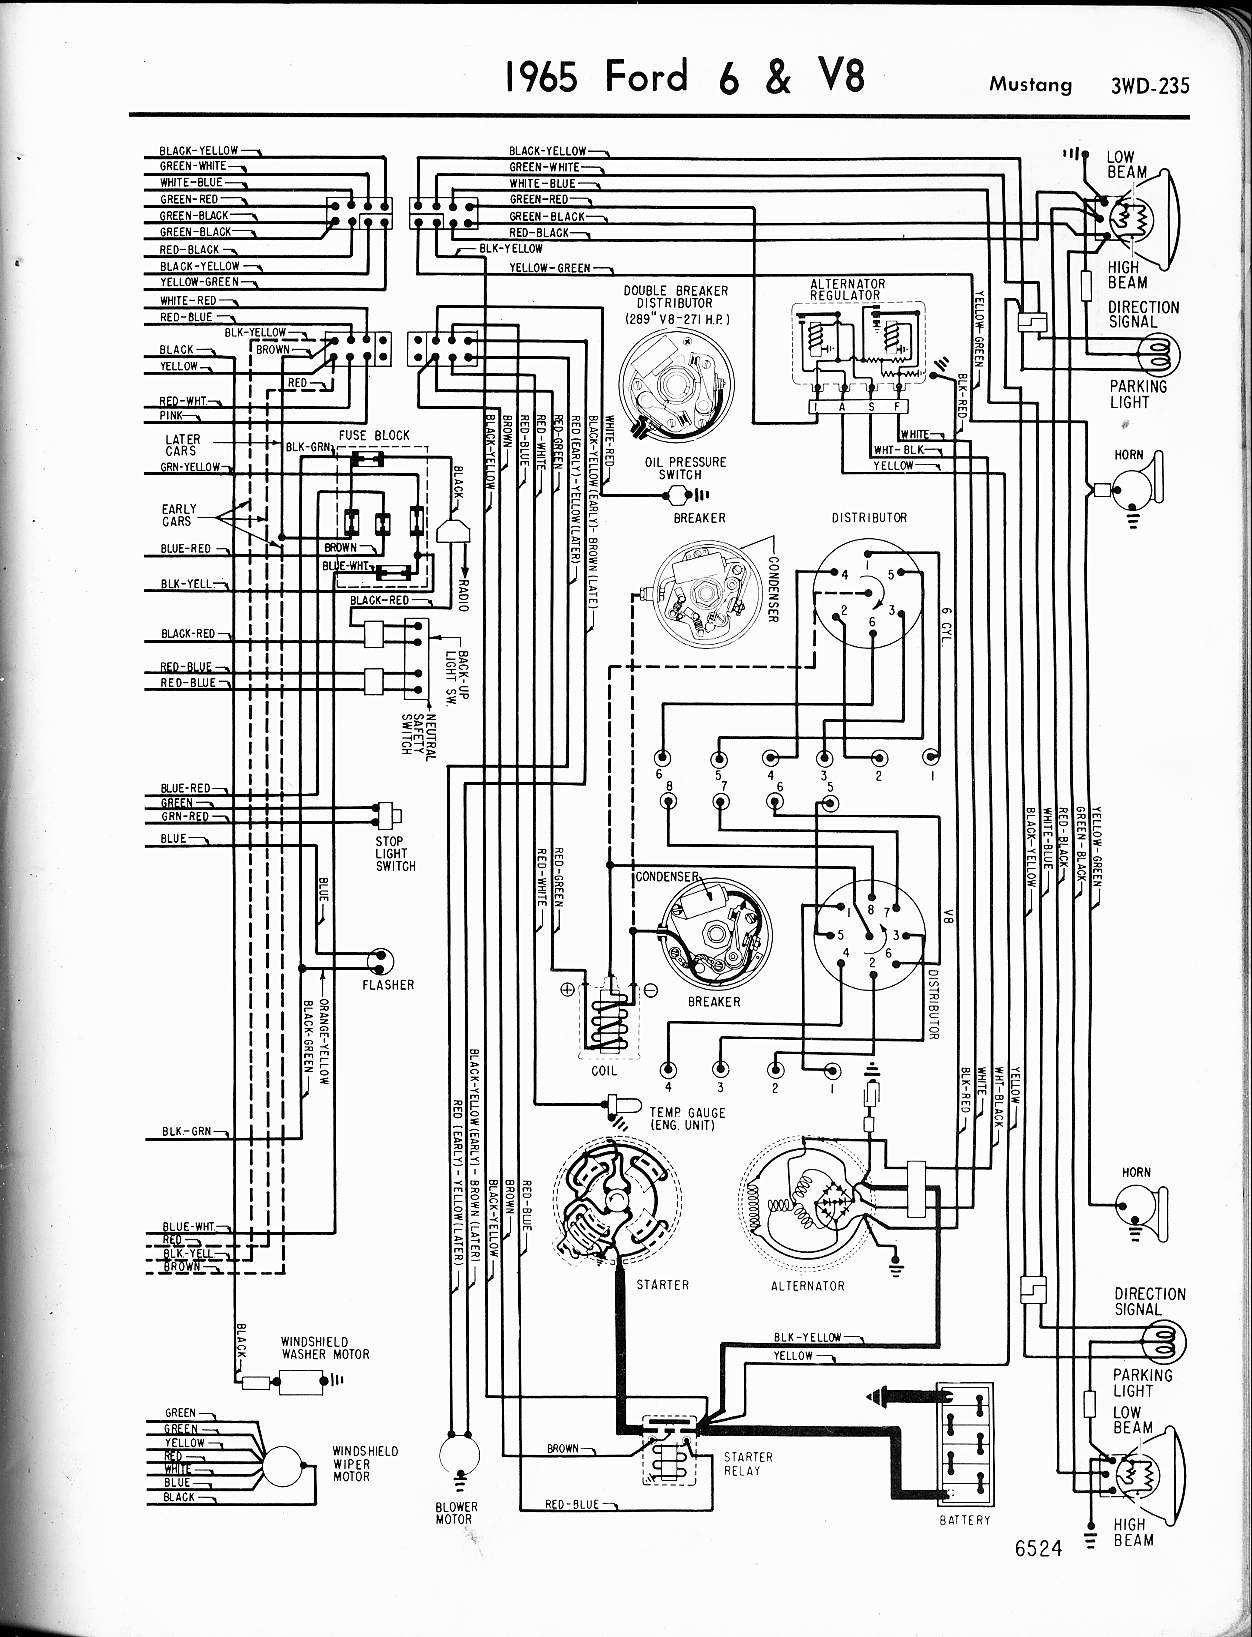 1969 F150 Wiring Diagram Automotive 2003 Ford Mustang Library Rh 10 Muehlwald De F 150